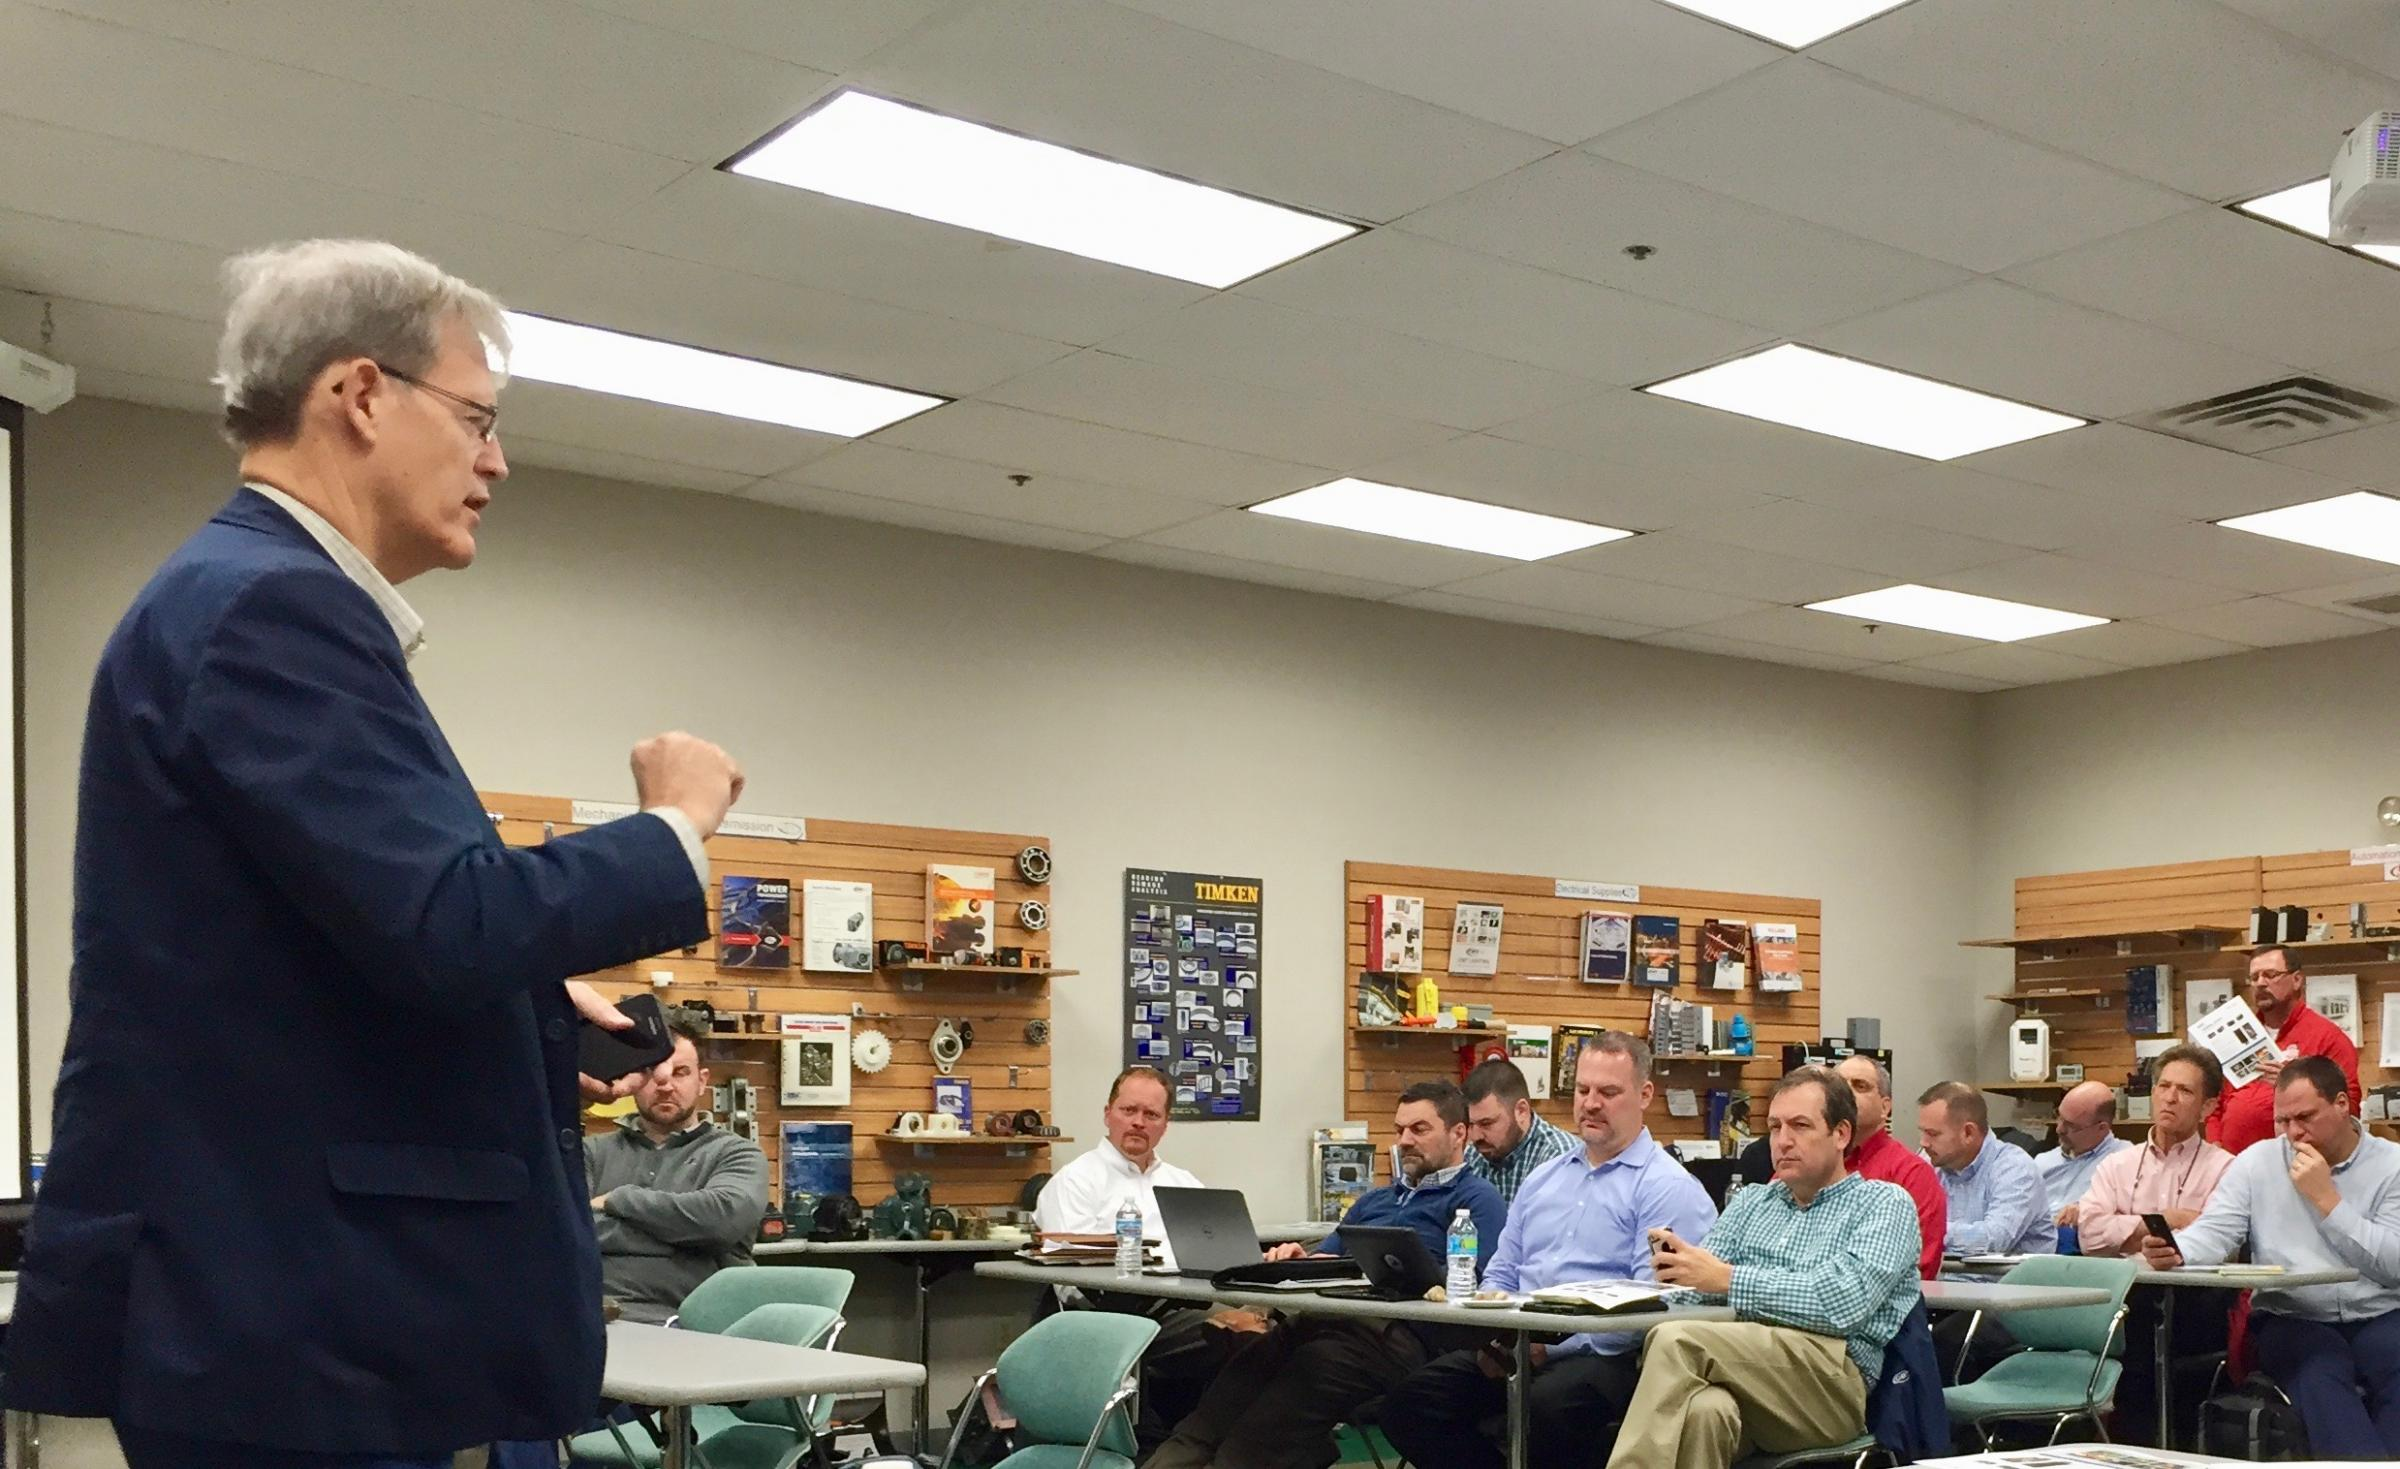 Terry Clausing Conducting a Training Session in Classroom